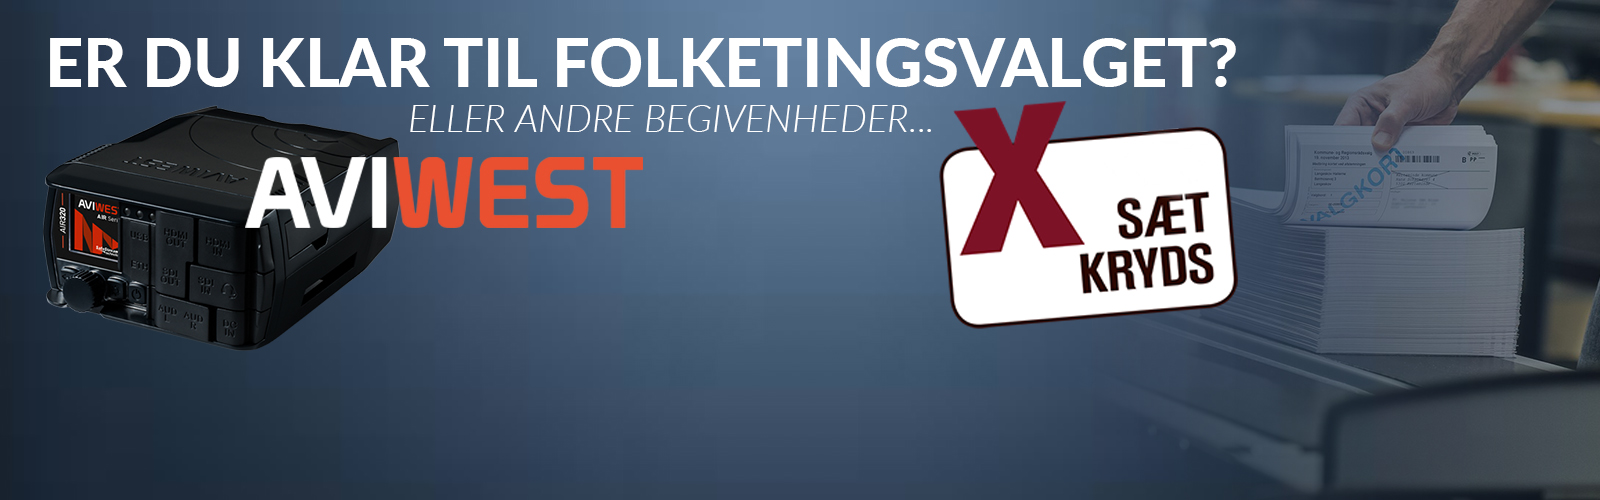 AVIWEST_folketing_slider